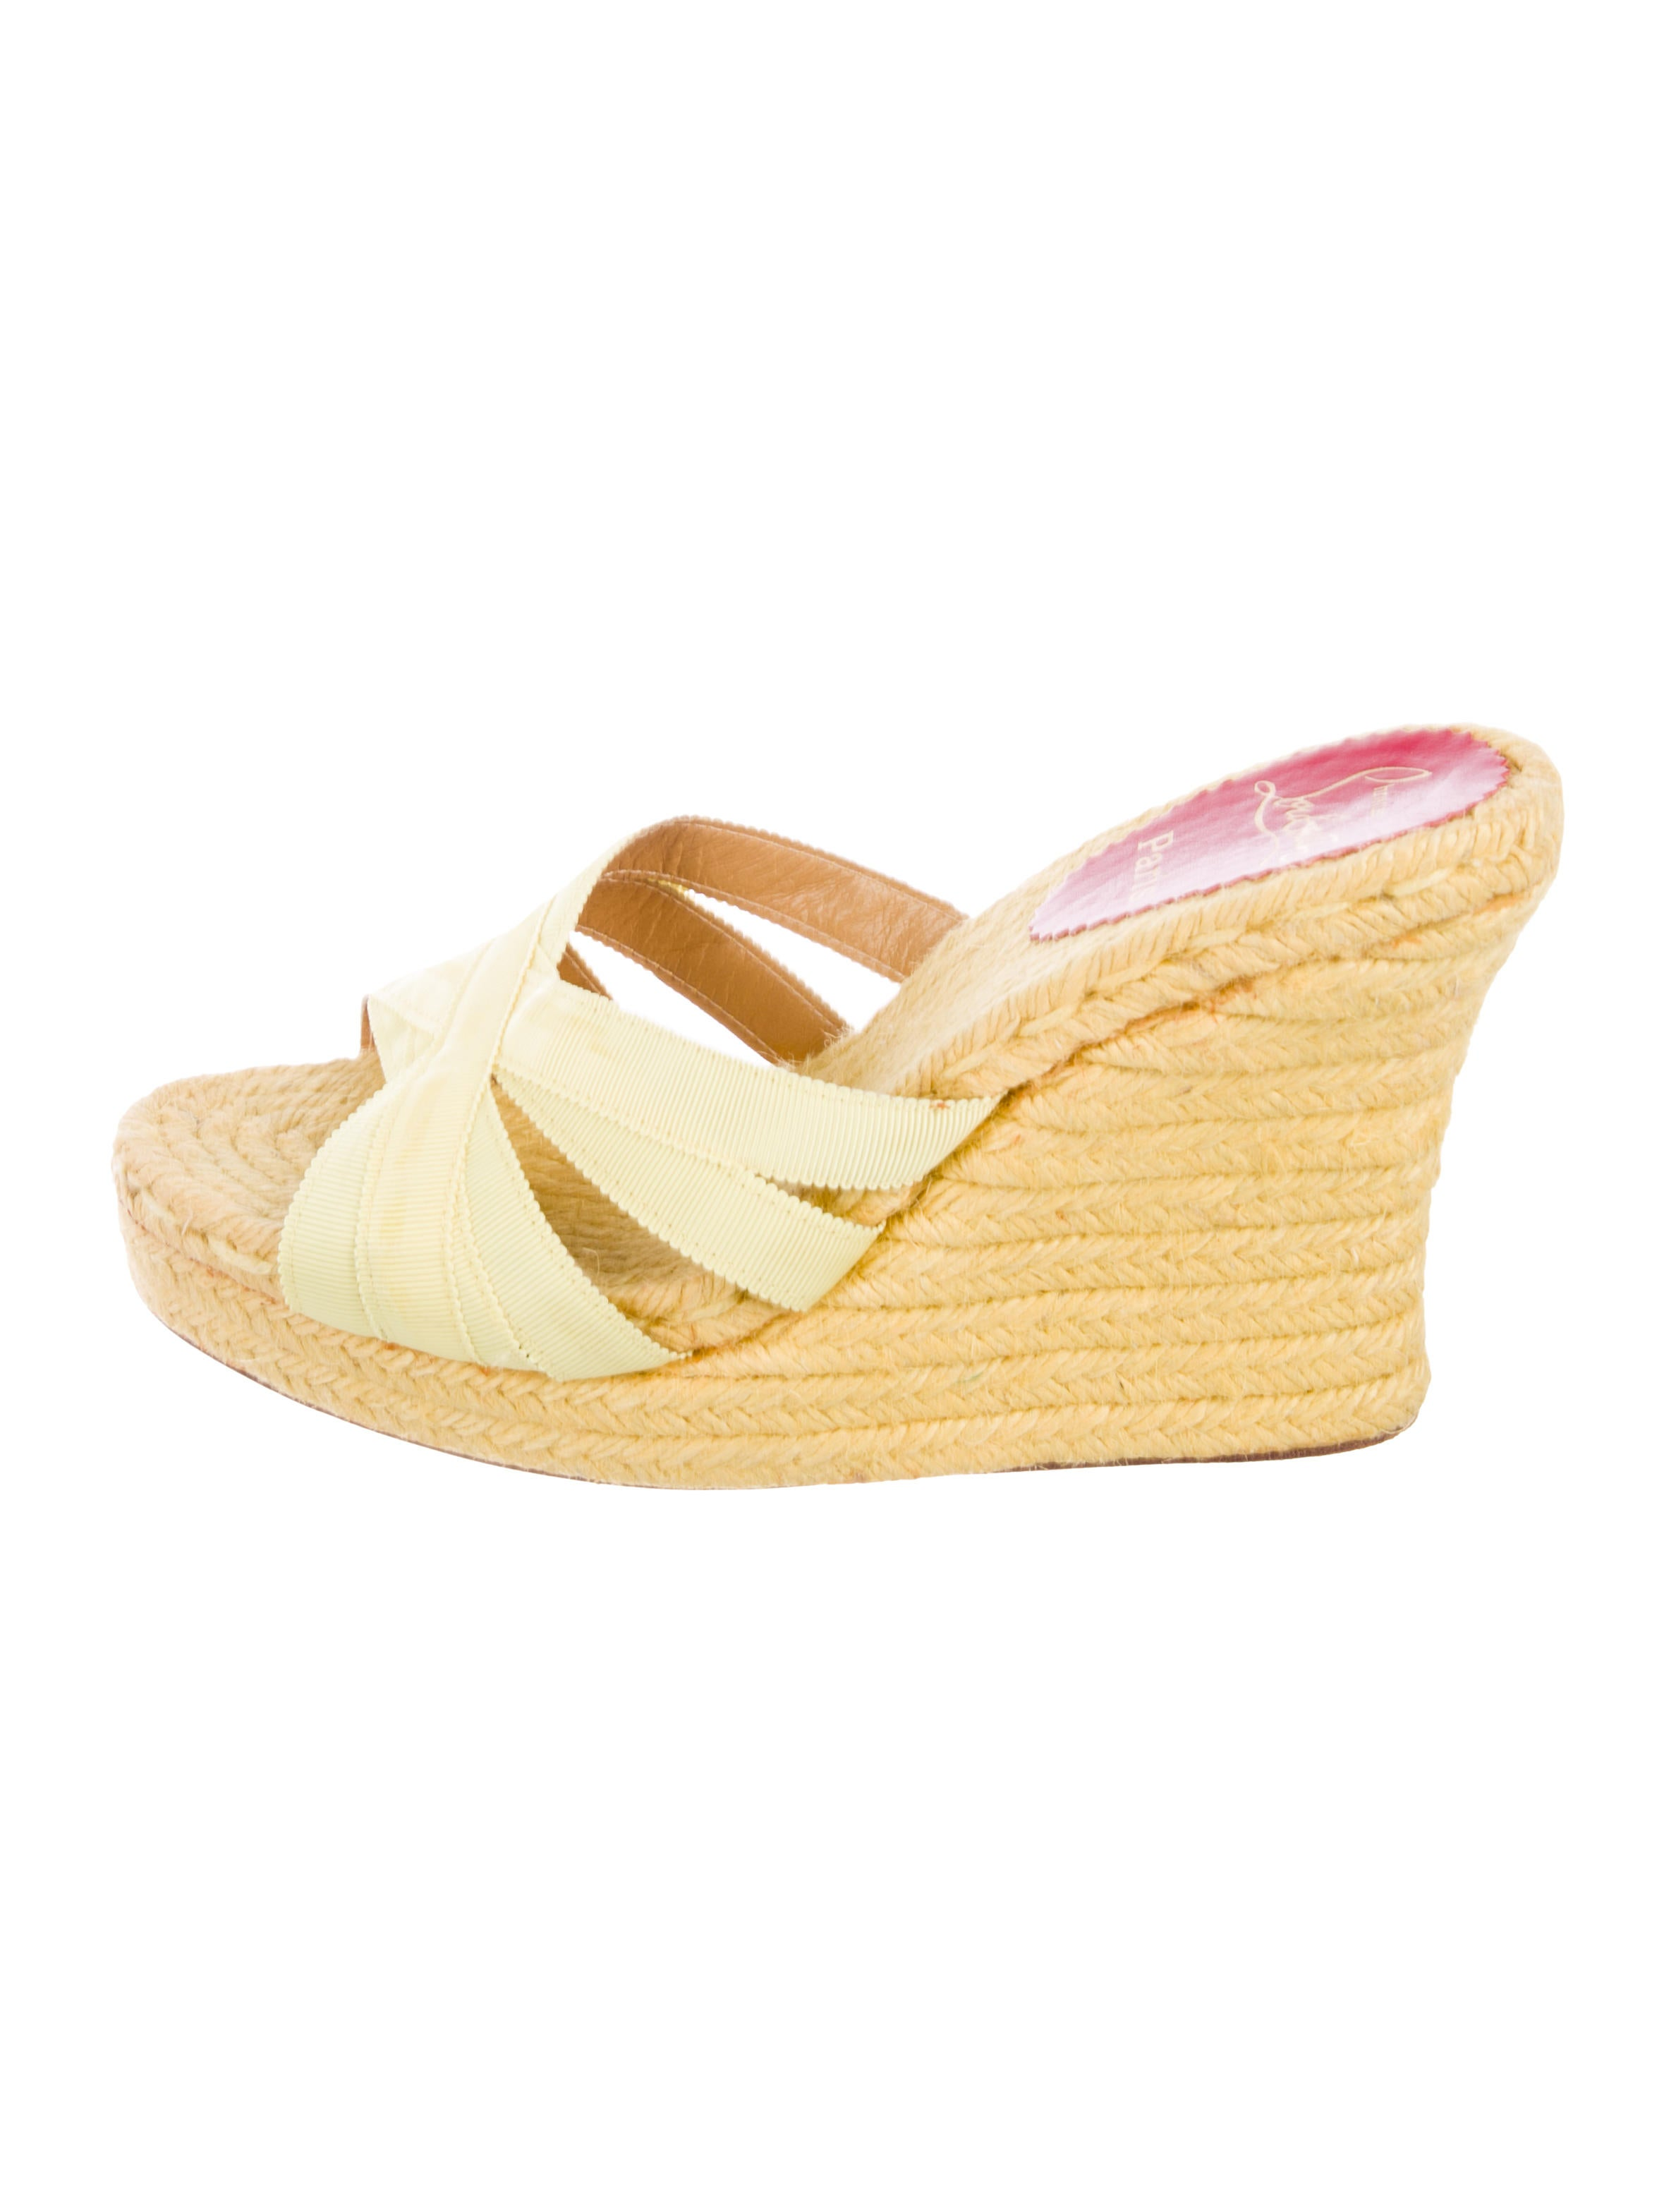 9958308fbf04 Christian Louboutin Cataribbon Espadrille Wedge Sandals - Shoes ...